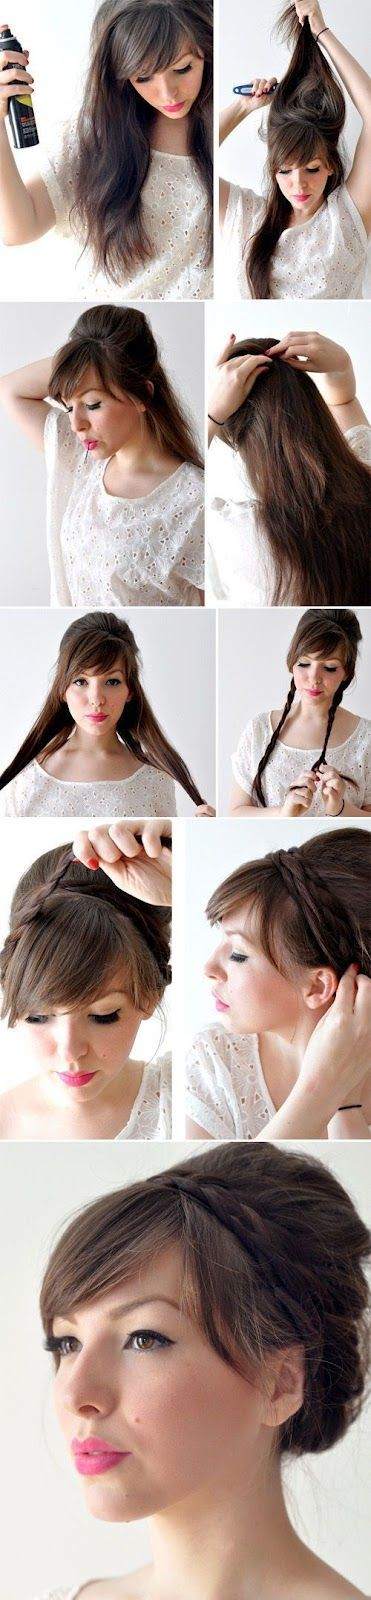 Amazing Hairstyle easy to do for every girl